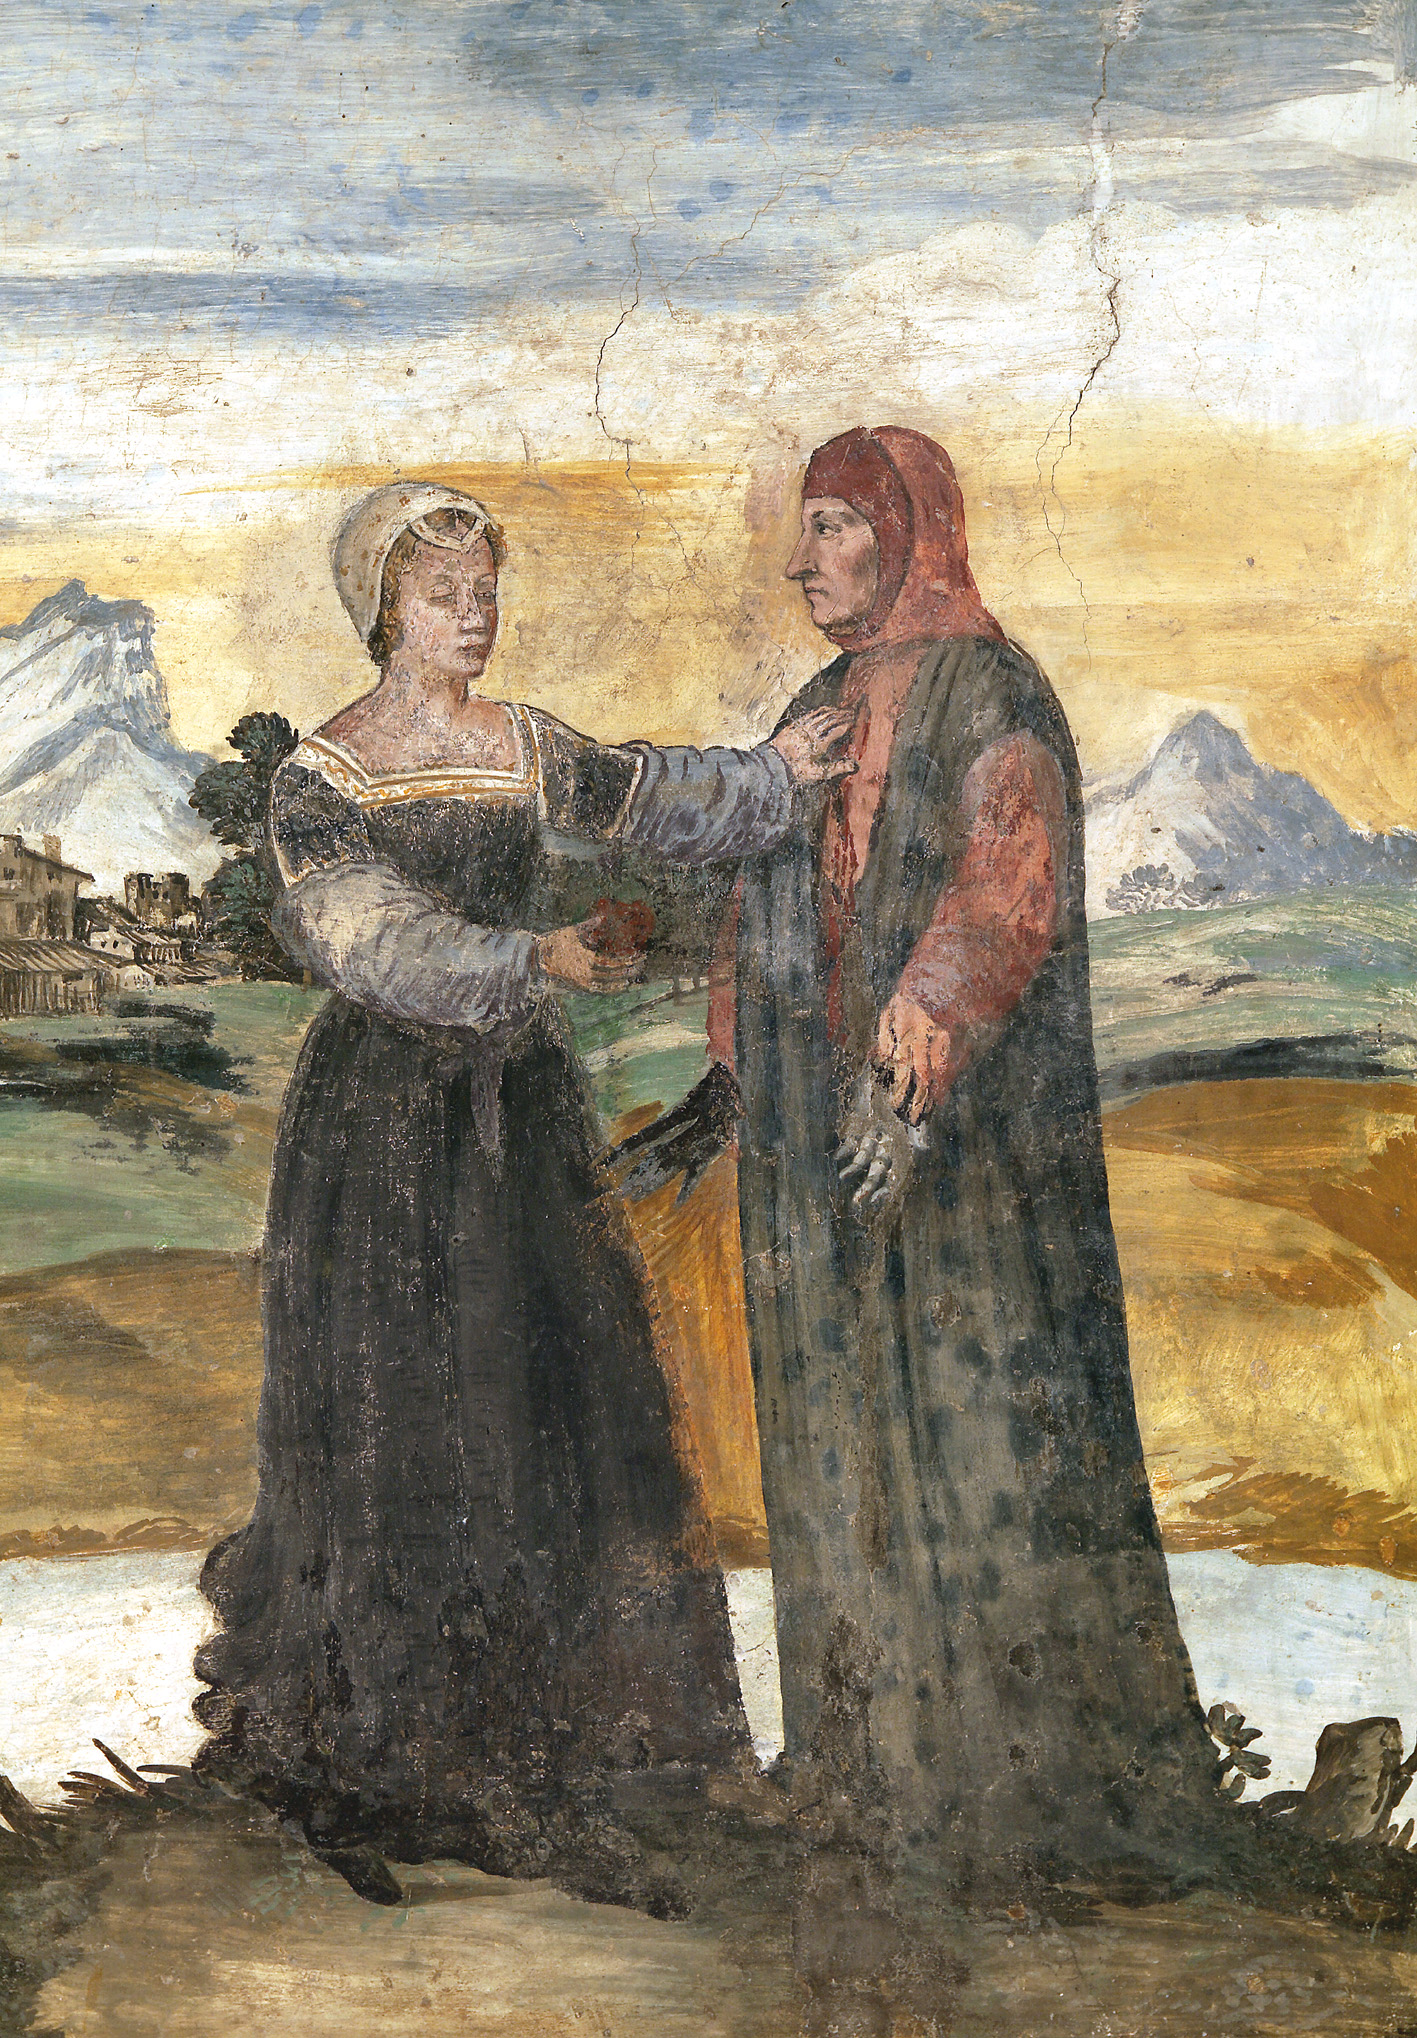 francesco petrarchs passion for laura Francesco petrarca (petrarch) (1304-1374) biography of petrarch (encyclopedia britannica) selected poems of petrarch in side-by-side italian and english translation.